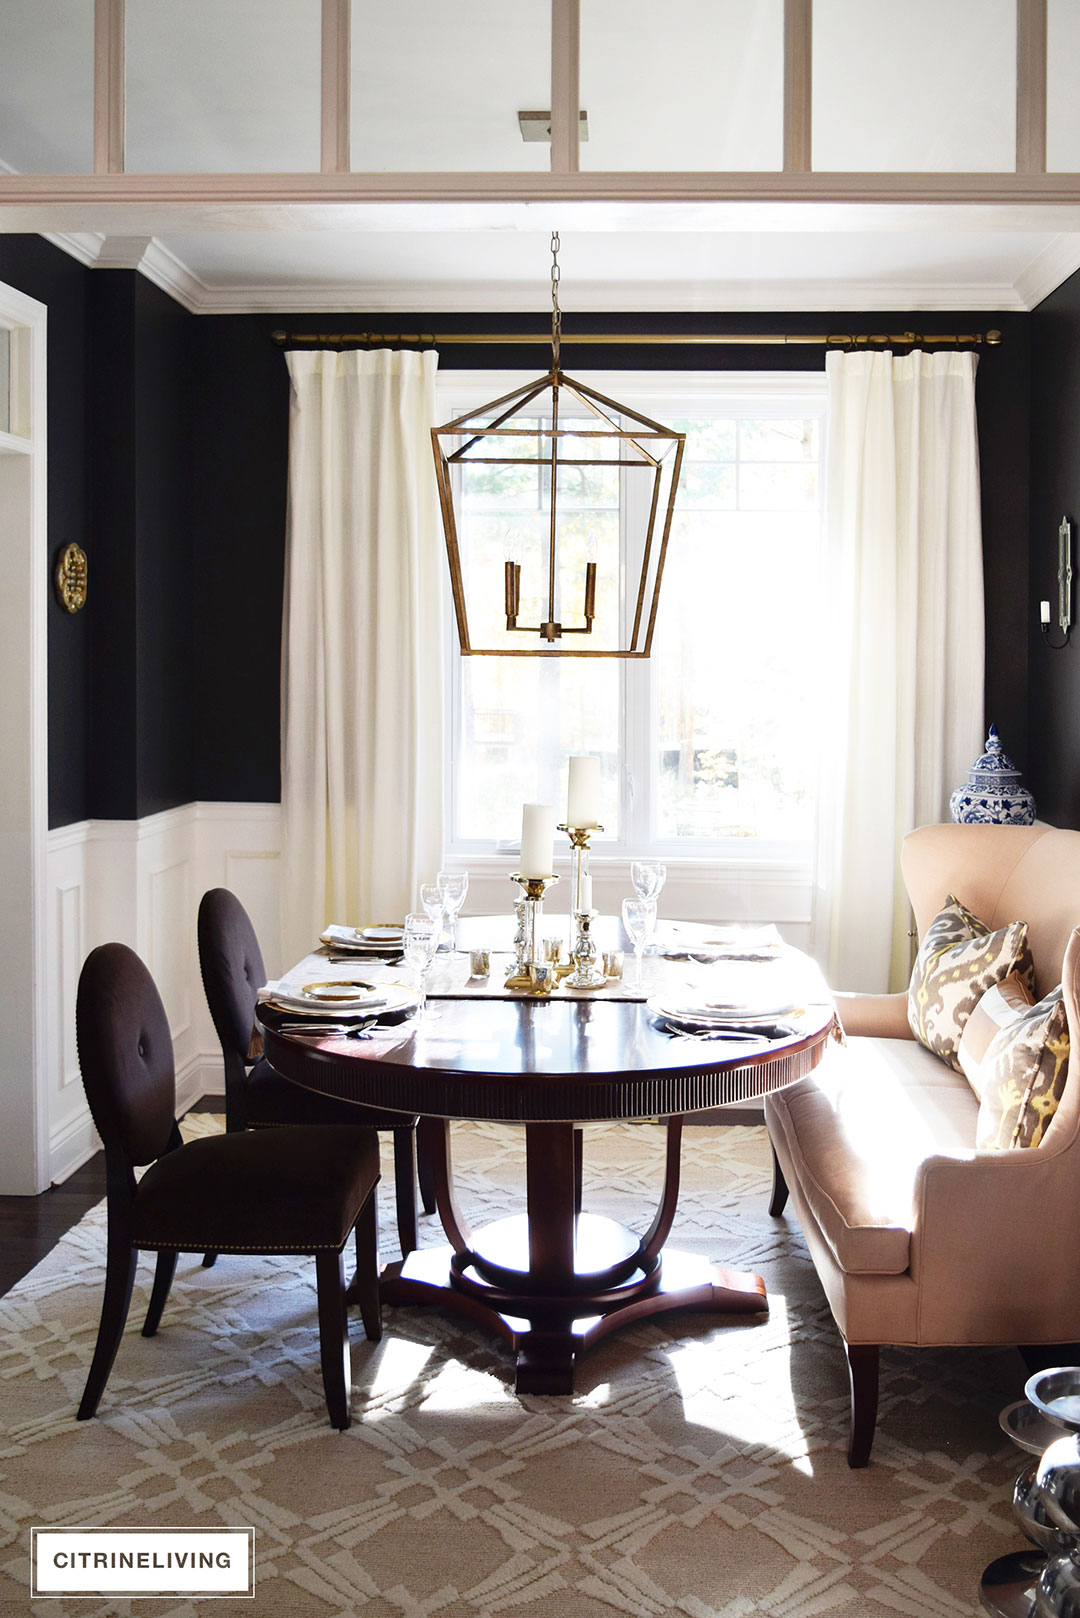 Citrineliving Neutral Dining Room Updates: room with black walls